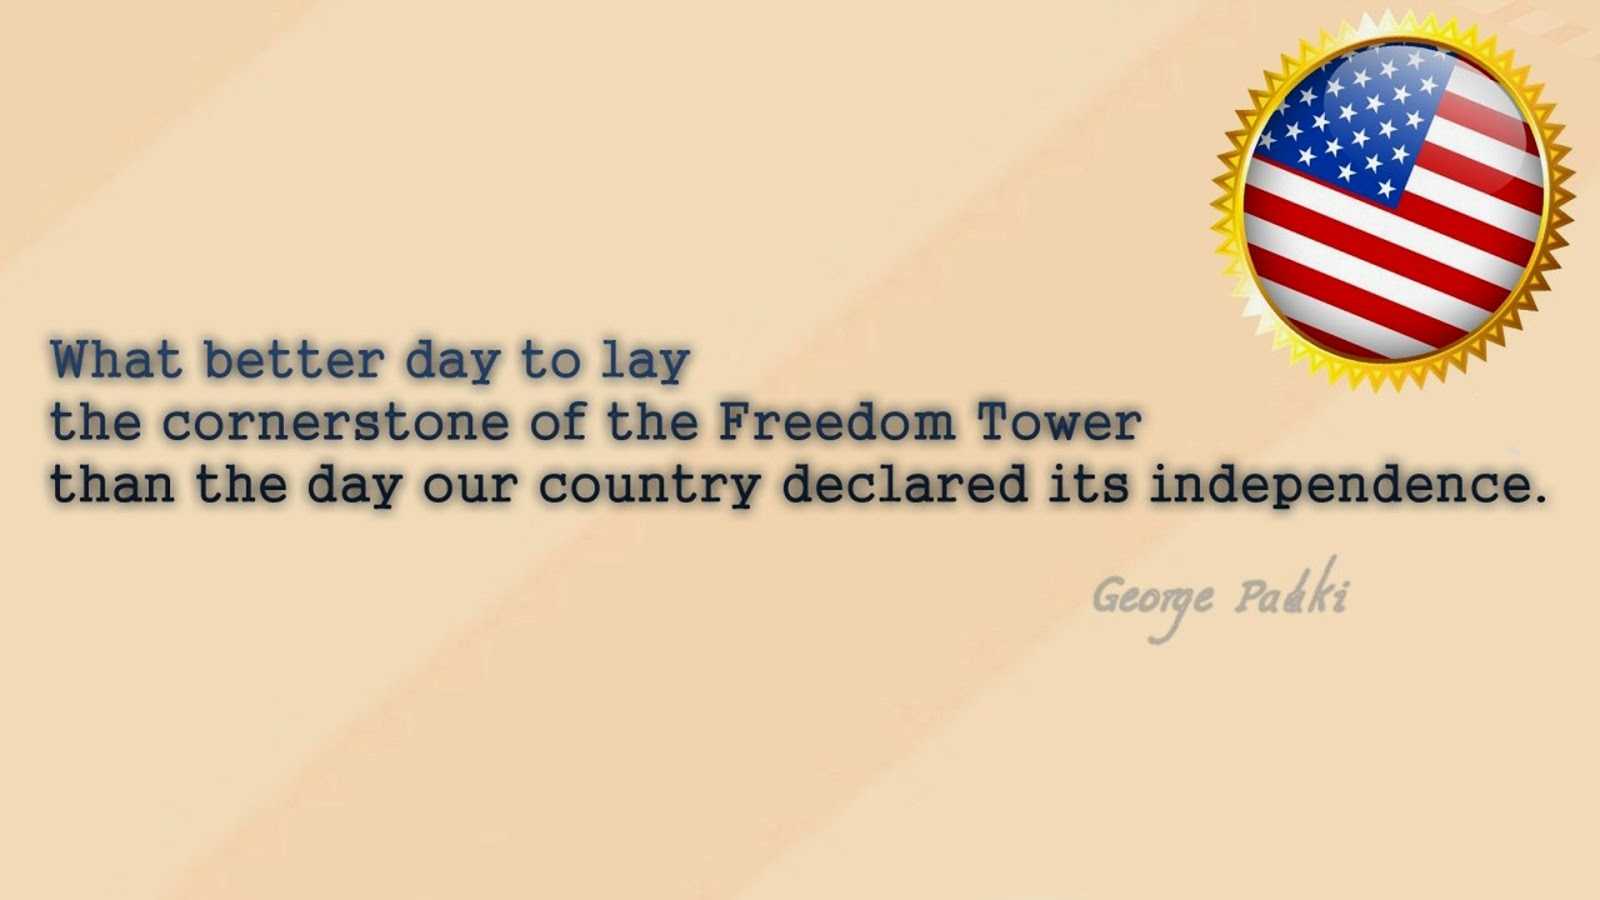 Best 4th Of July Quotes What Better Day To Lay By George Pahki